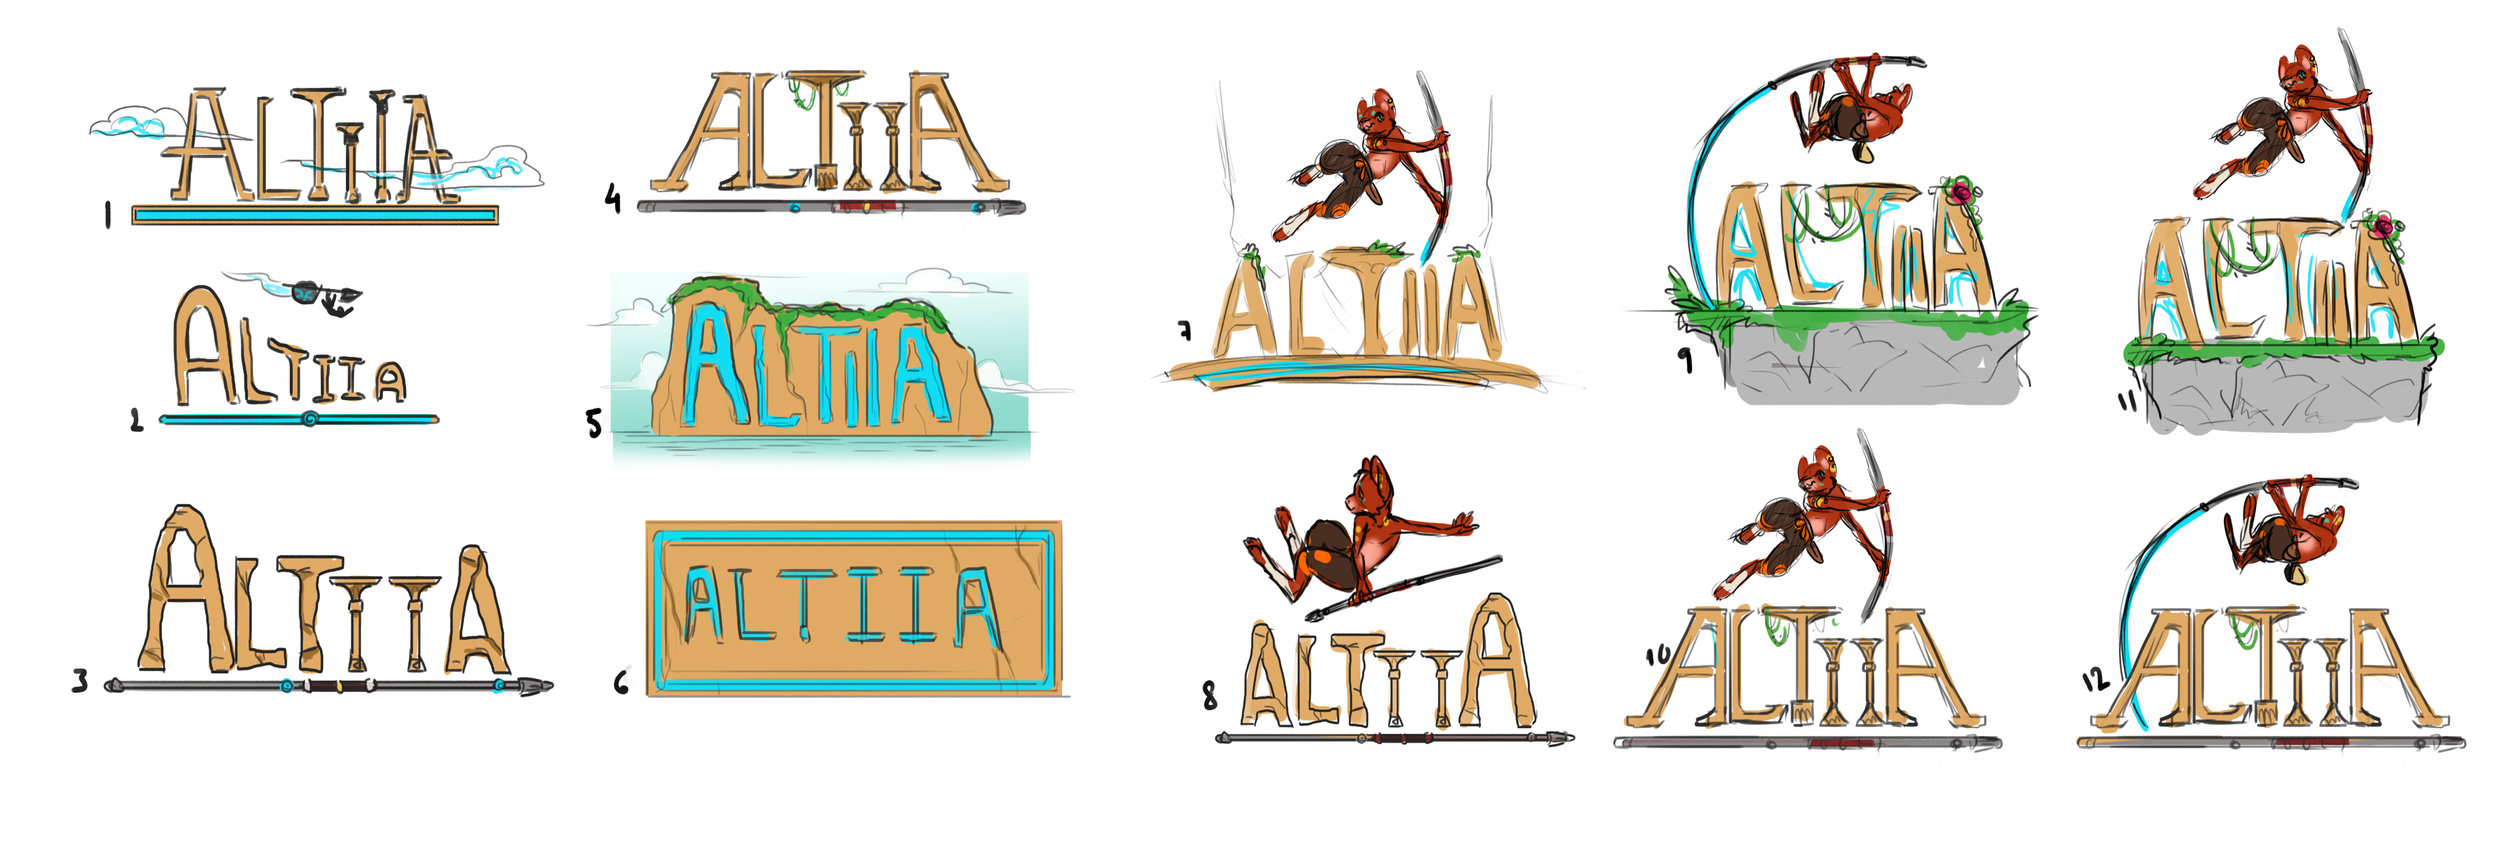 Early concept   My iteration process to get the logo done